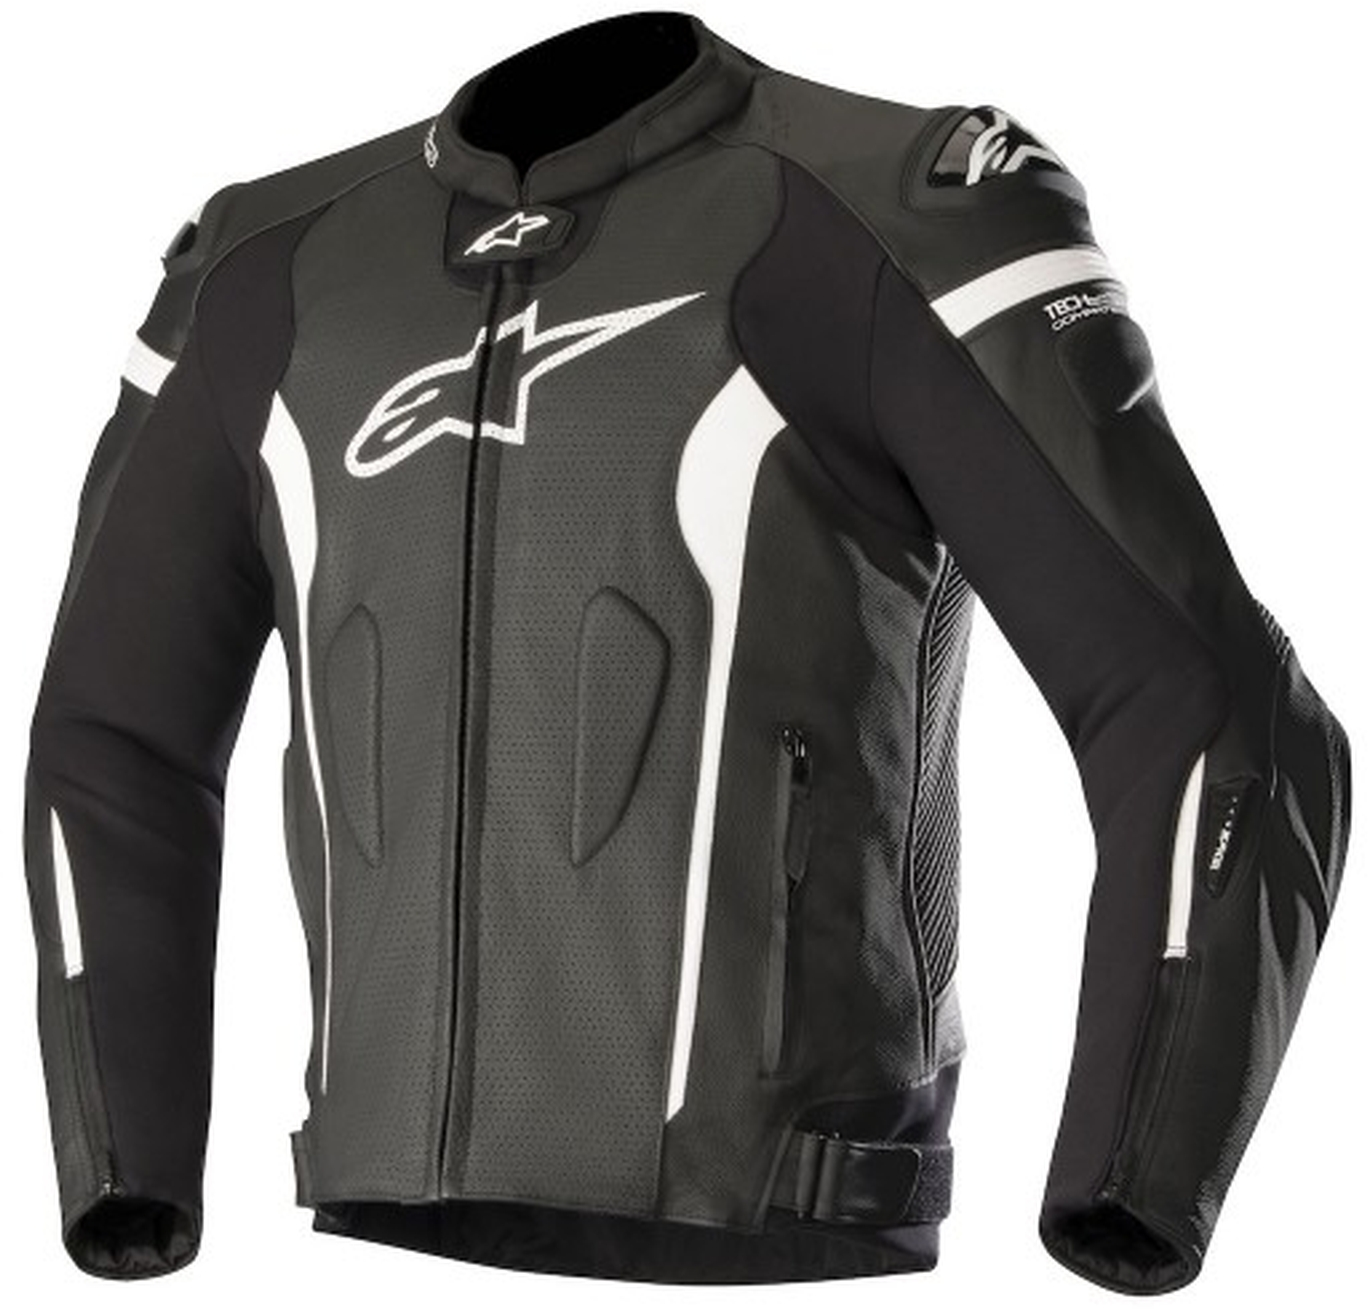 MISSILE LEATHER JACKET - TECH AIR COMPATIBLE